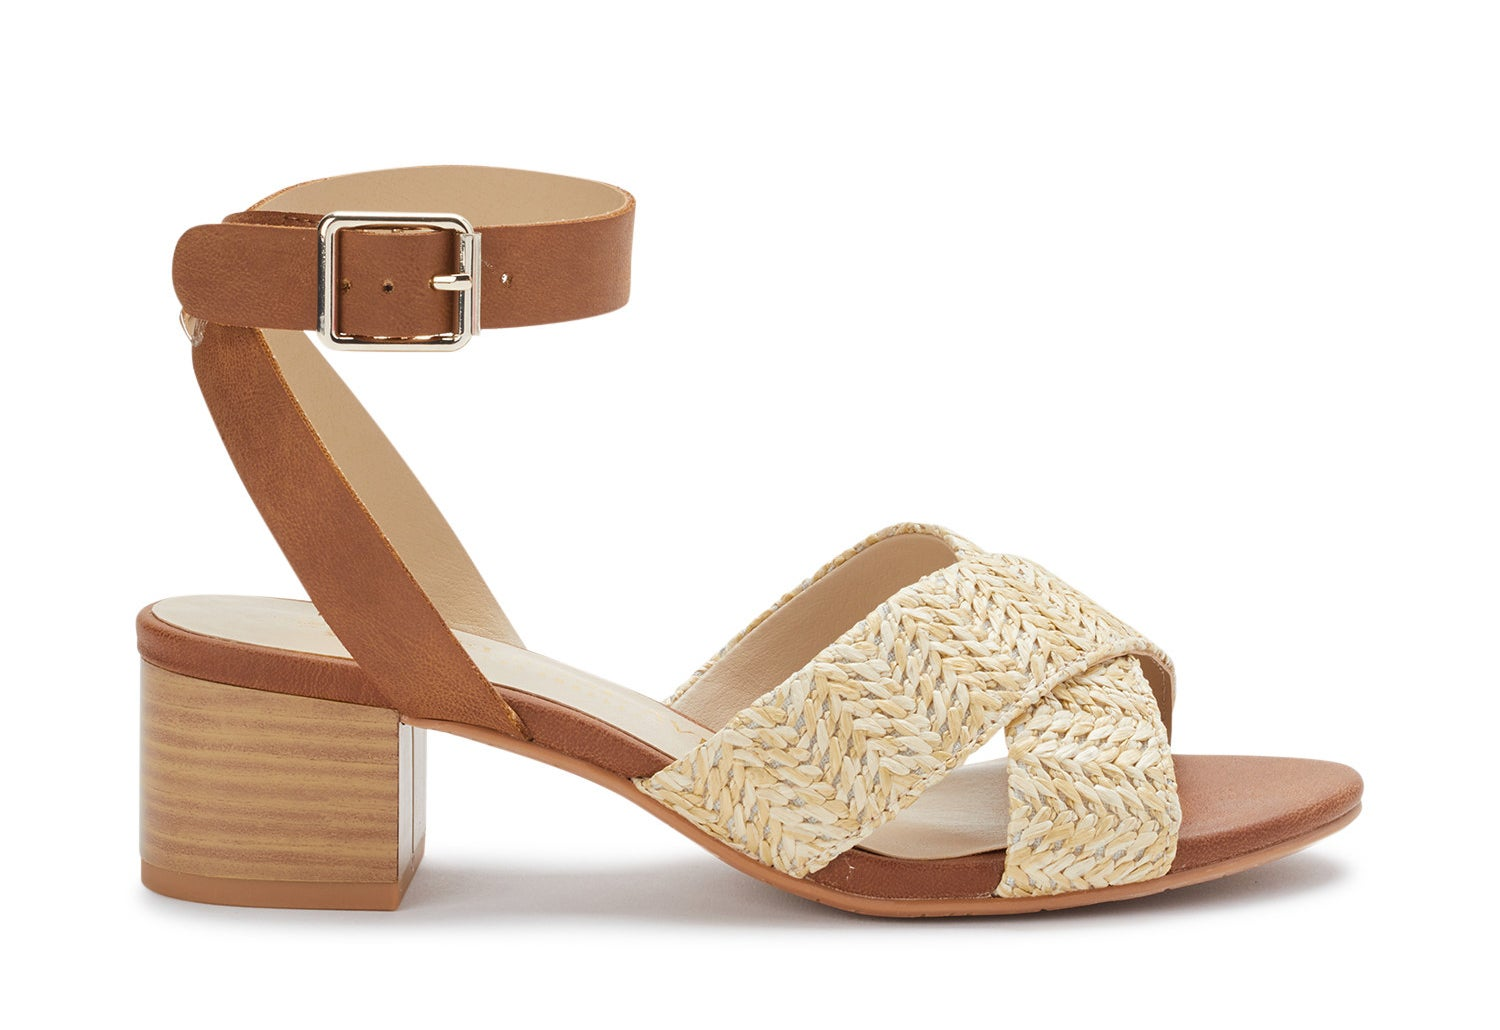 A natural raffia/cognac-colored ankle-strap low block heel sandal